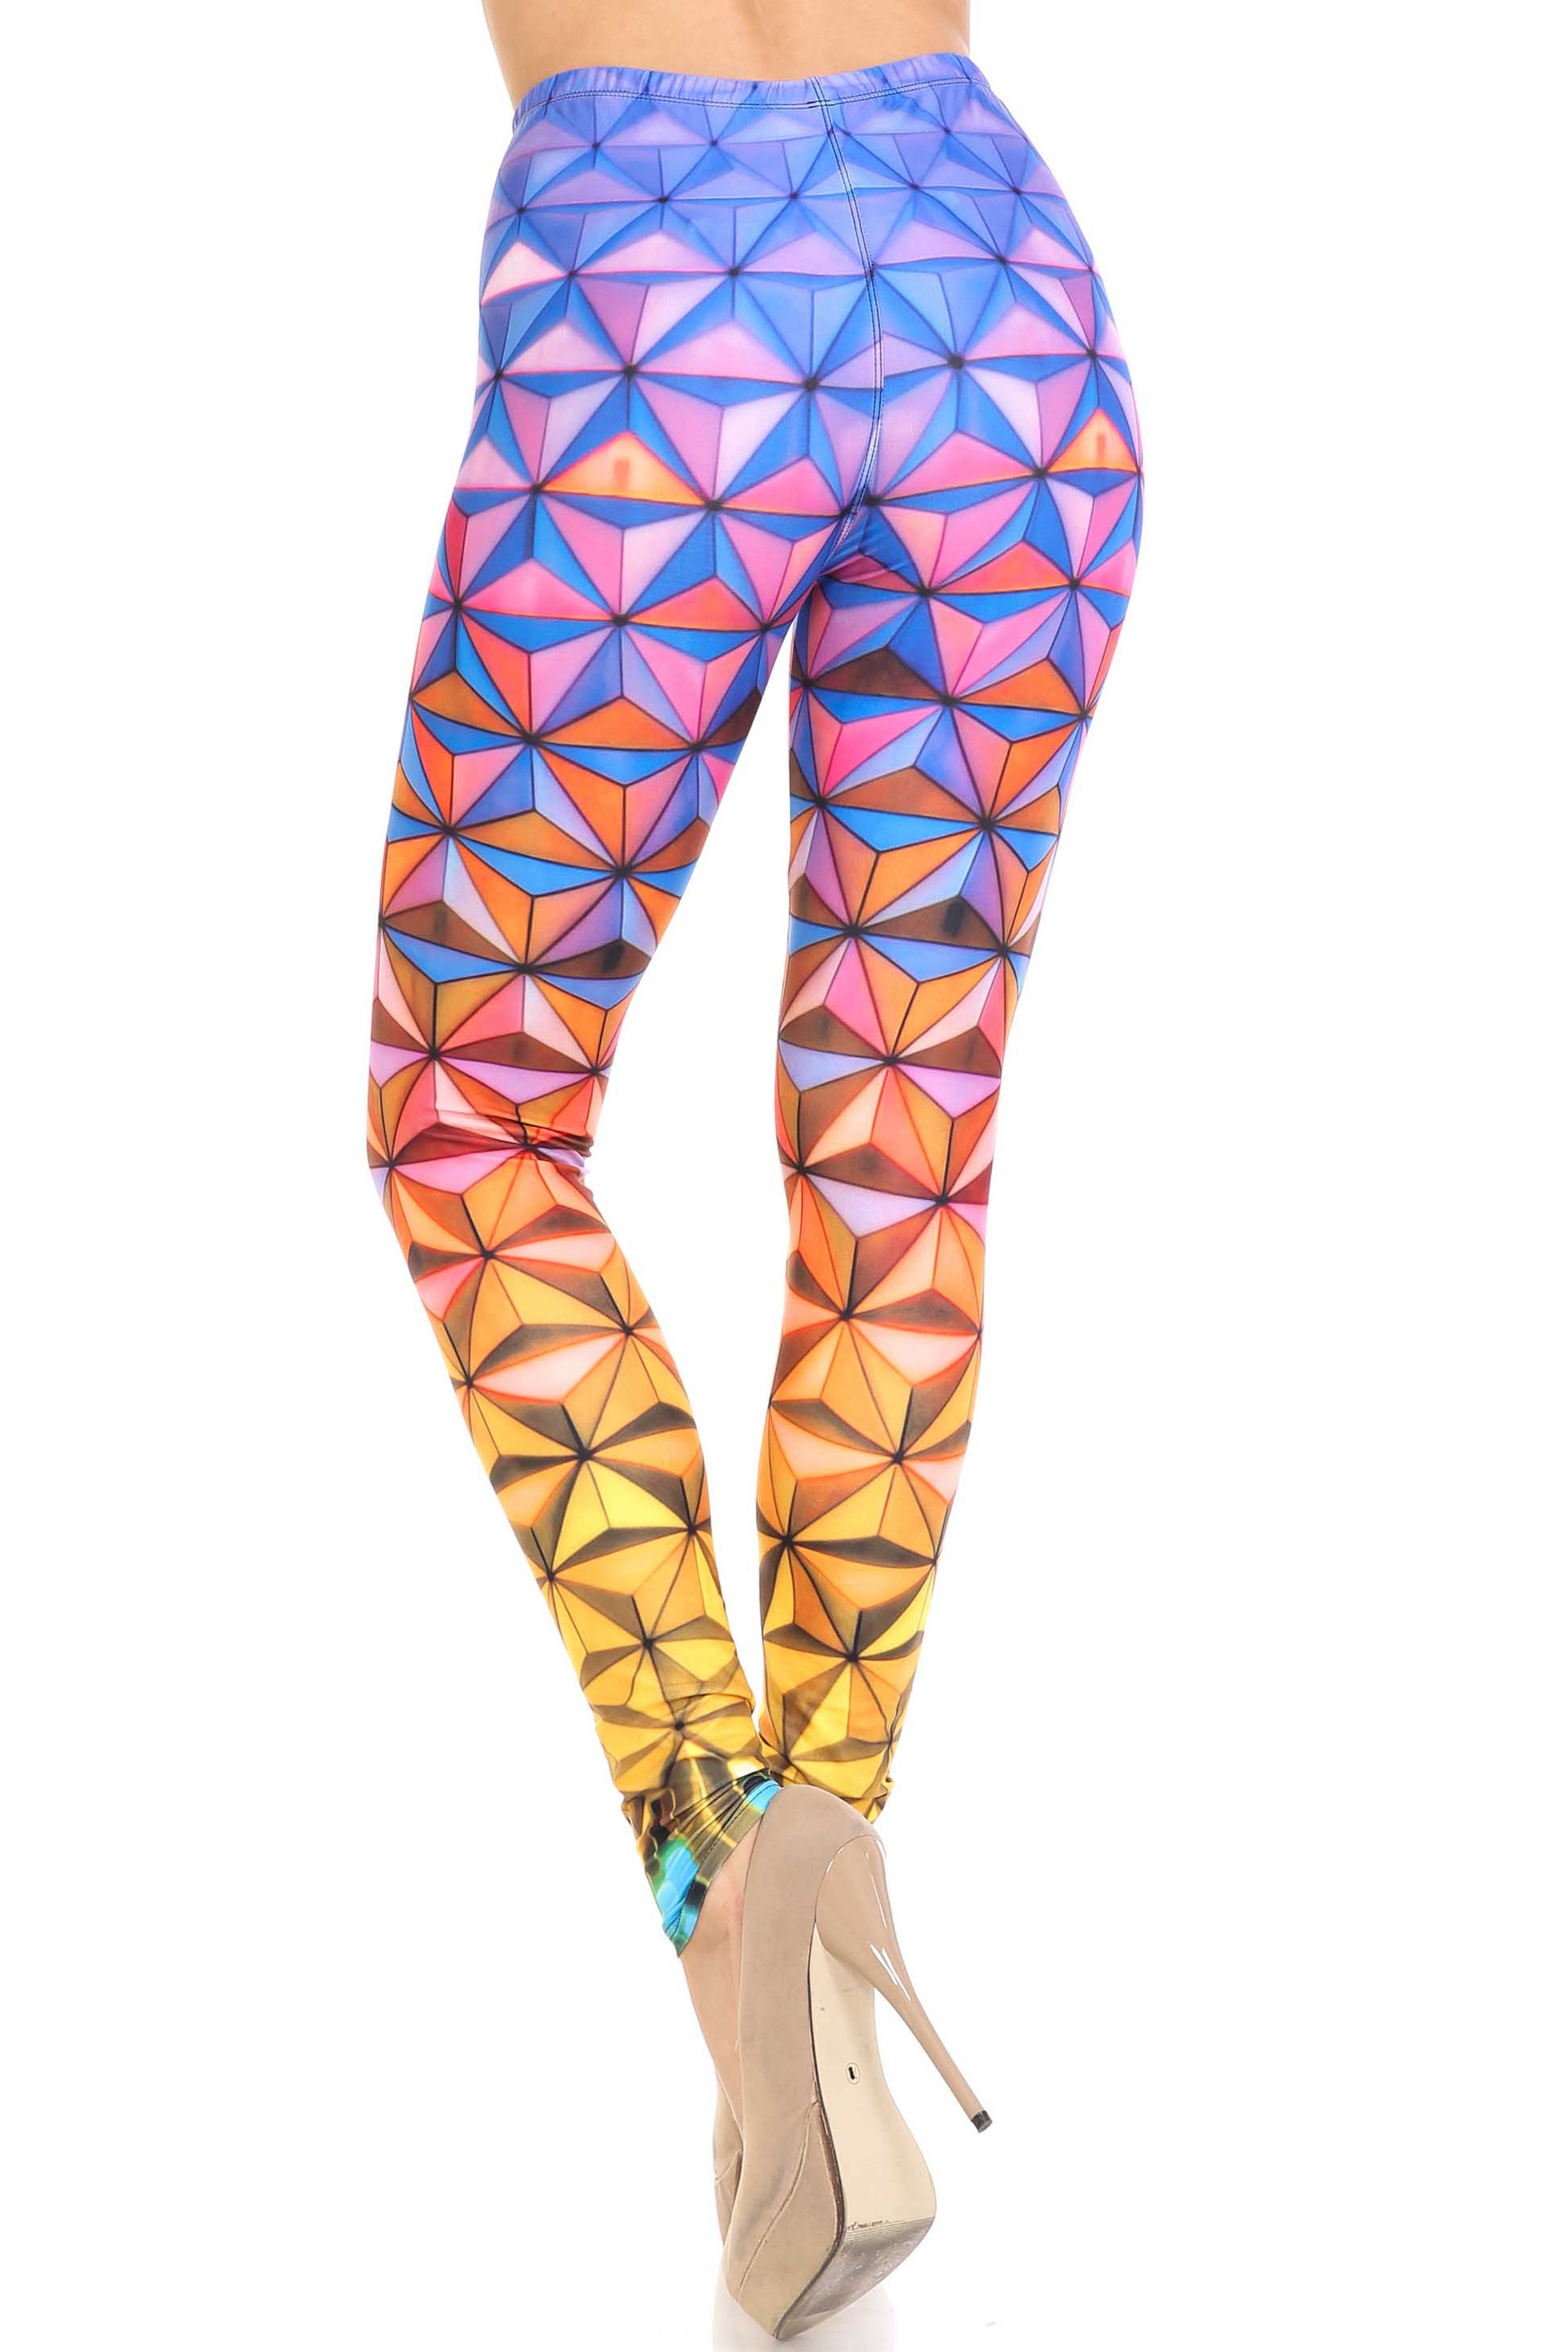 Creamy Soft Ombre Epcot Extra Plus Size Leggings - 3X-5X - USA Fashion™